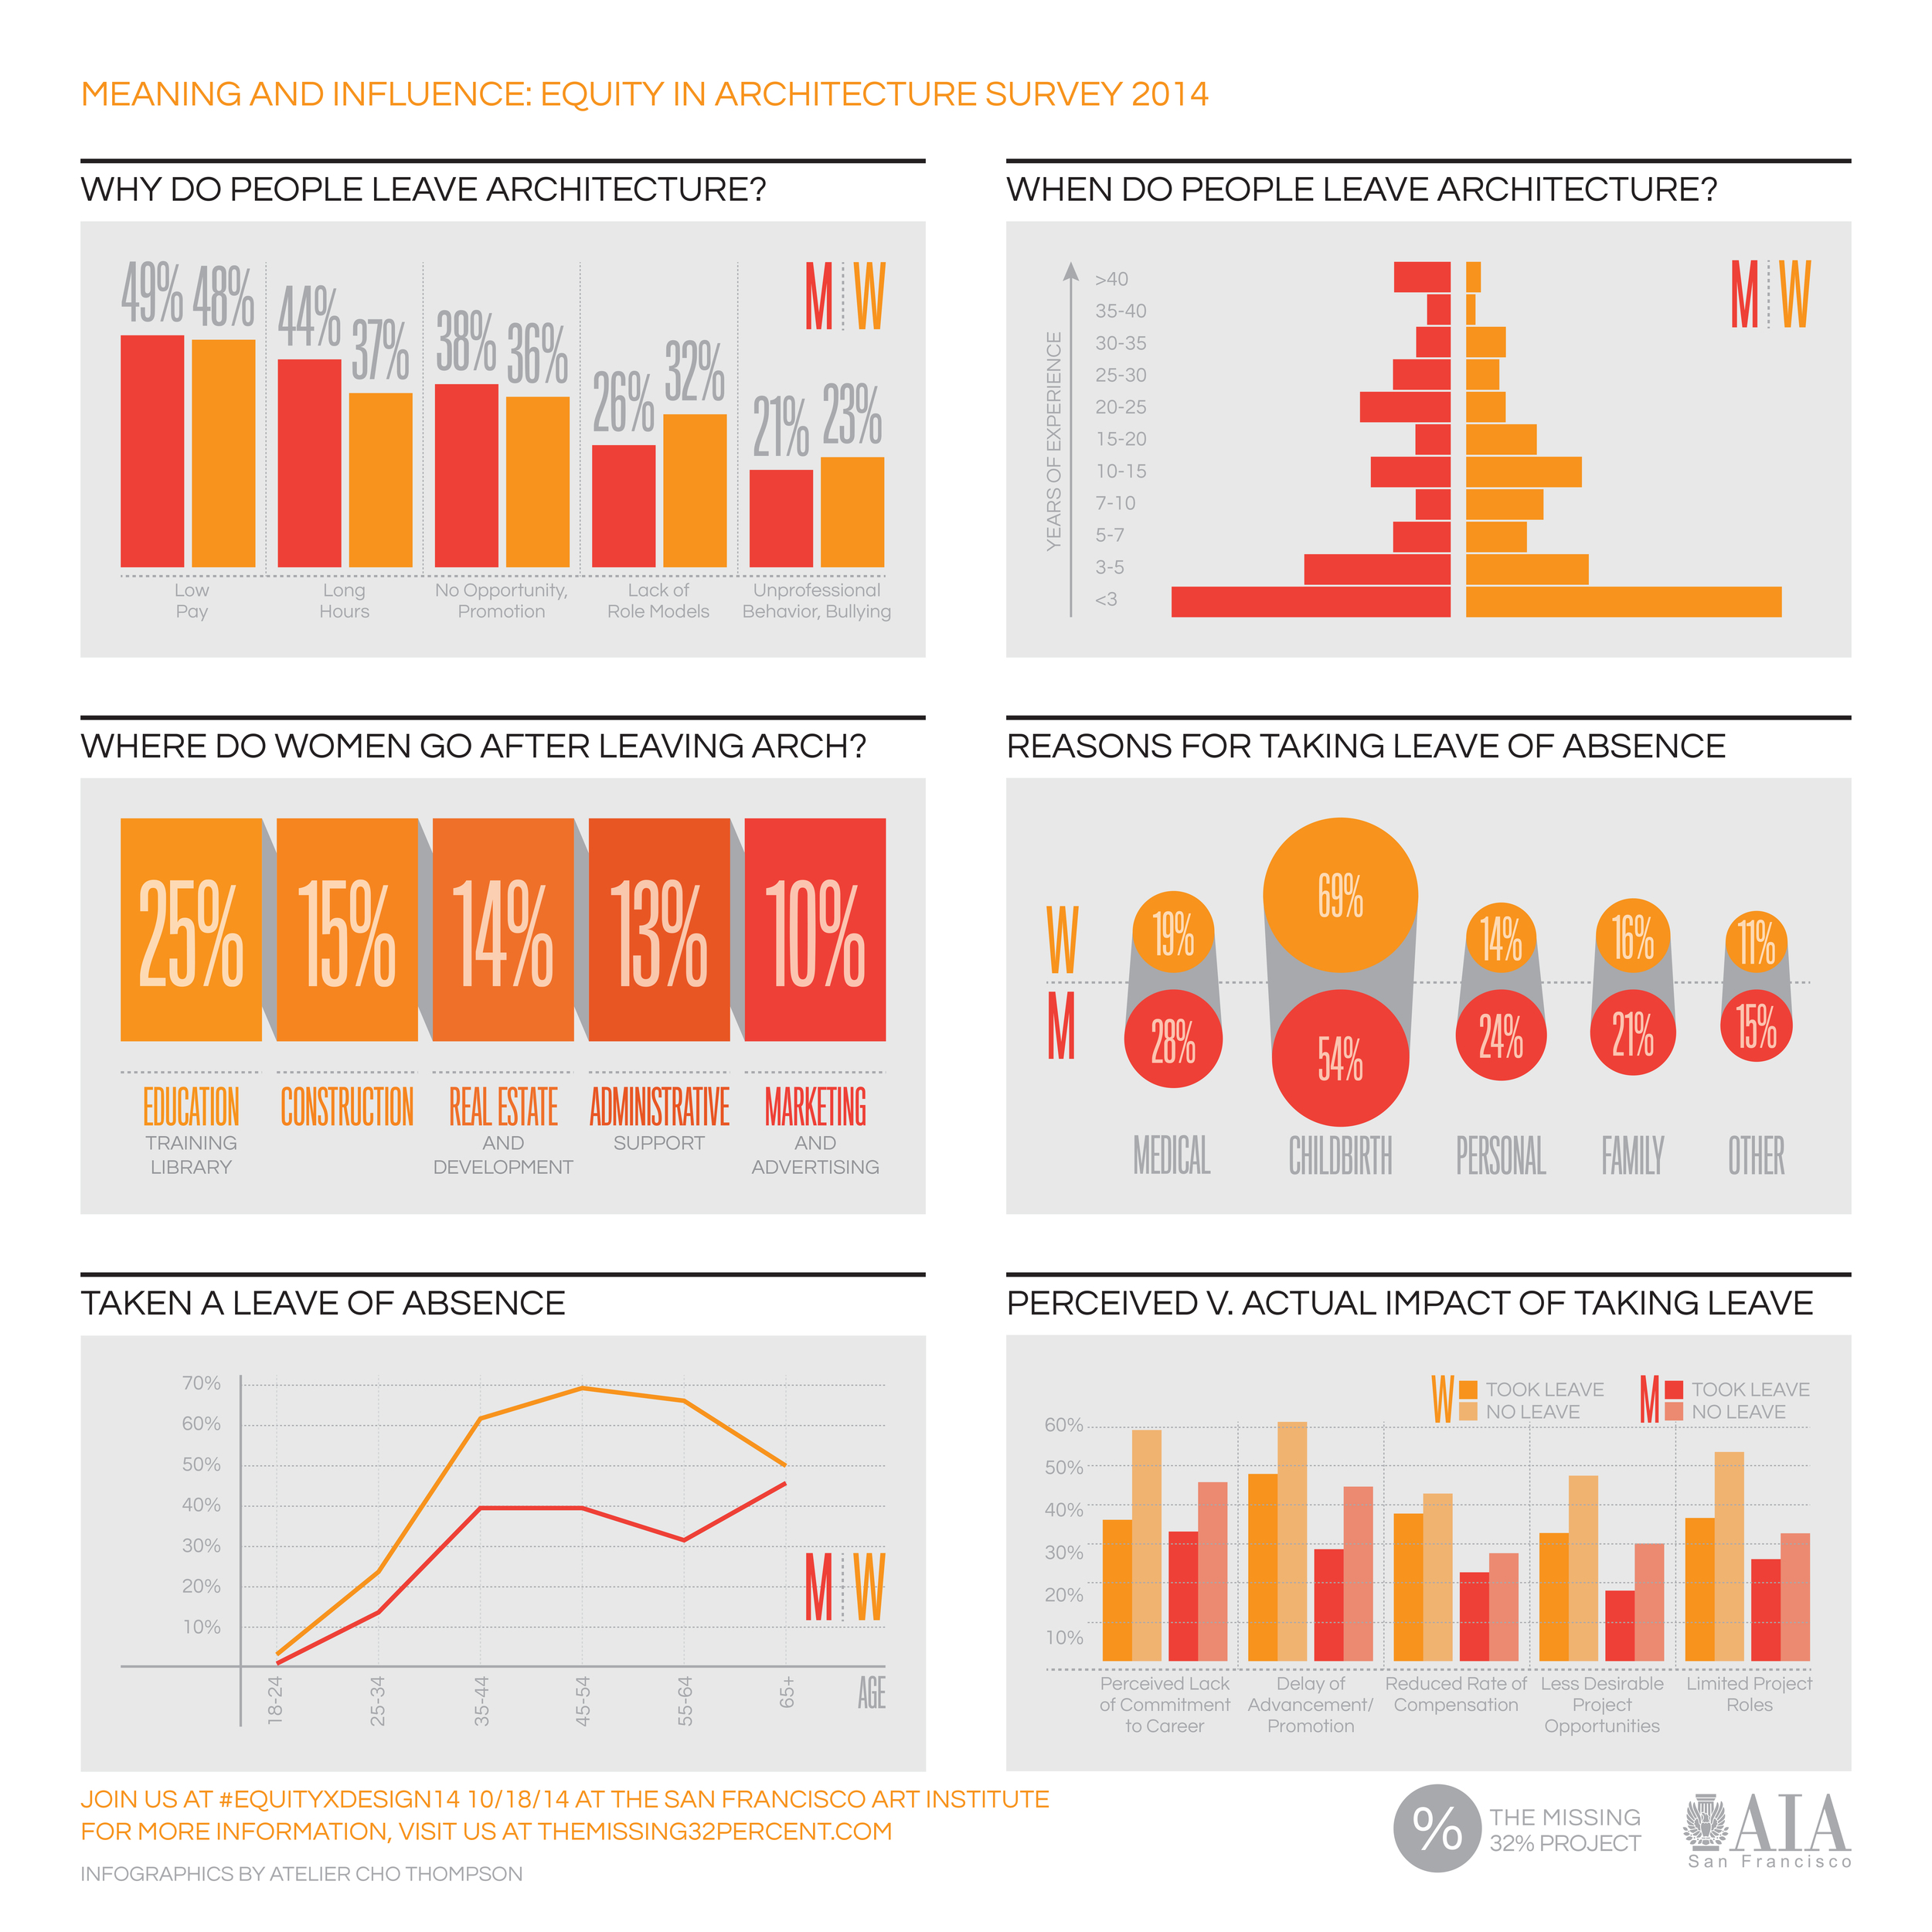 14_1015 Final Approved Infographics Boards UPDATED-8.jpg